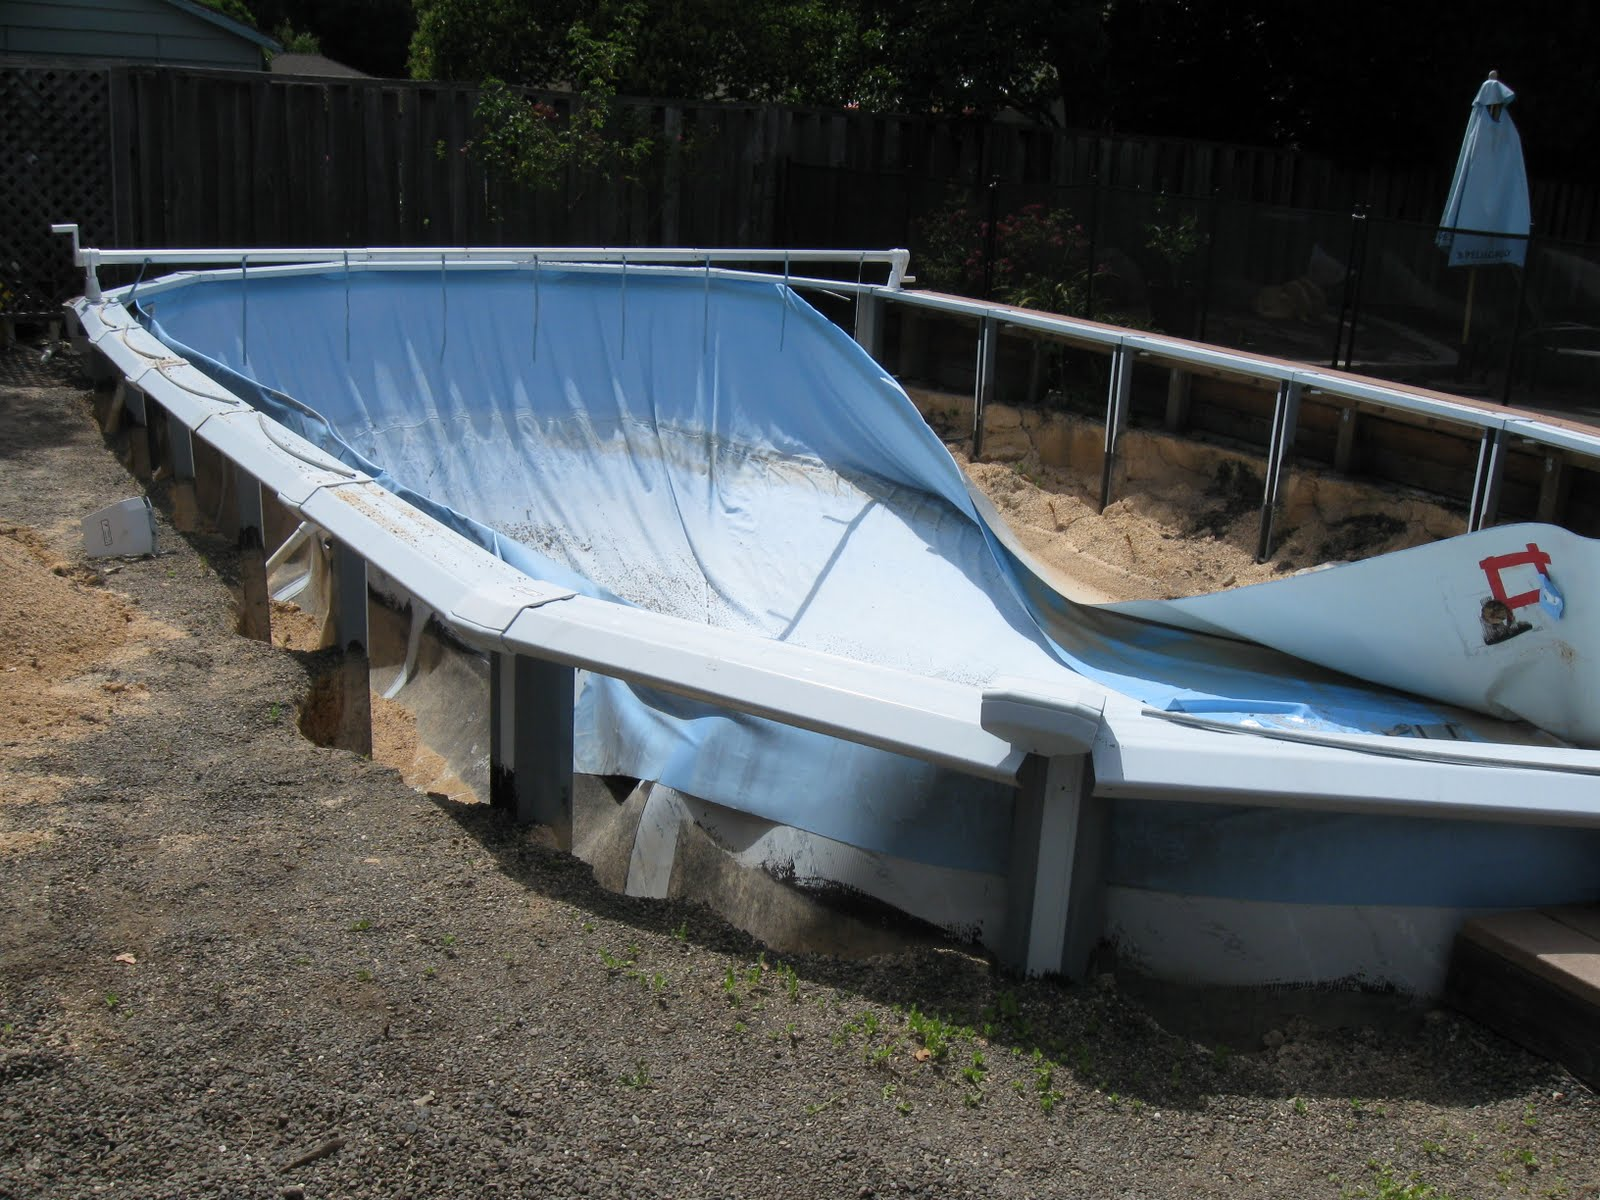 This is a photo of a Doughboy Above Ground Pool that was buried in the ground. As soon as the water was removed the pool collapsed under the weight of the backfill.